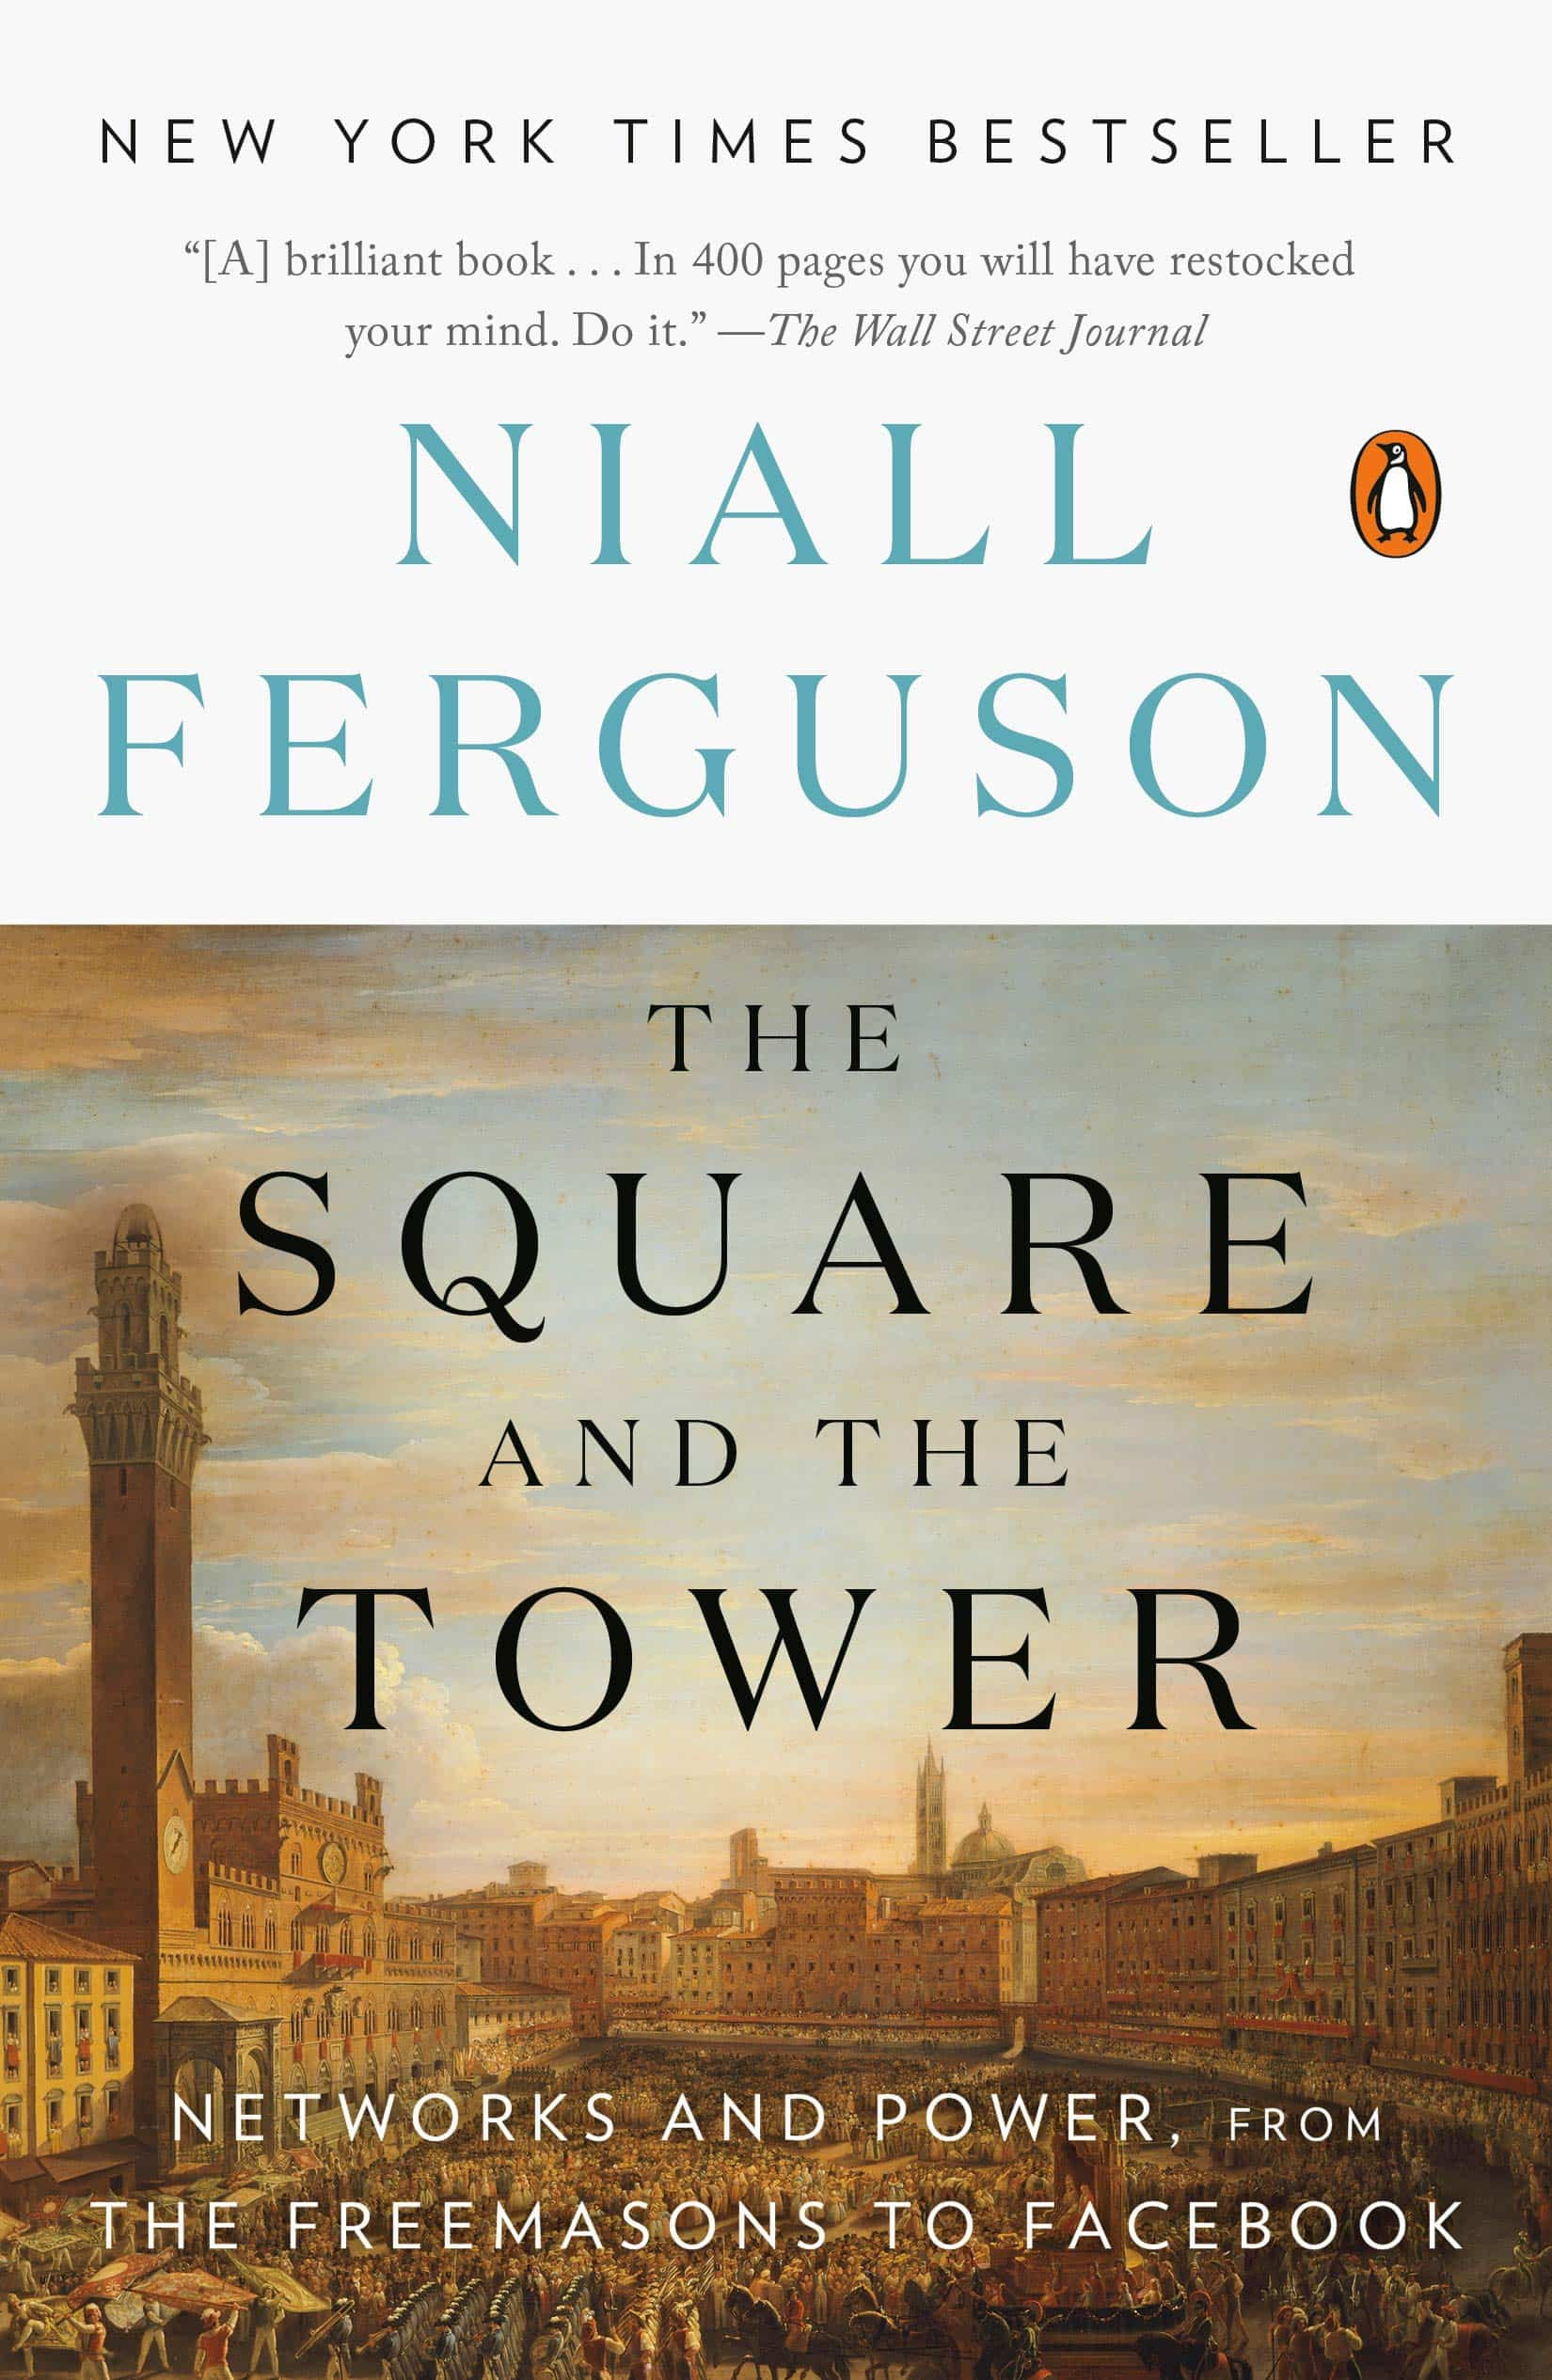 The cover of The Square and the Tower